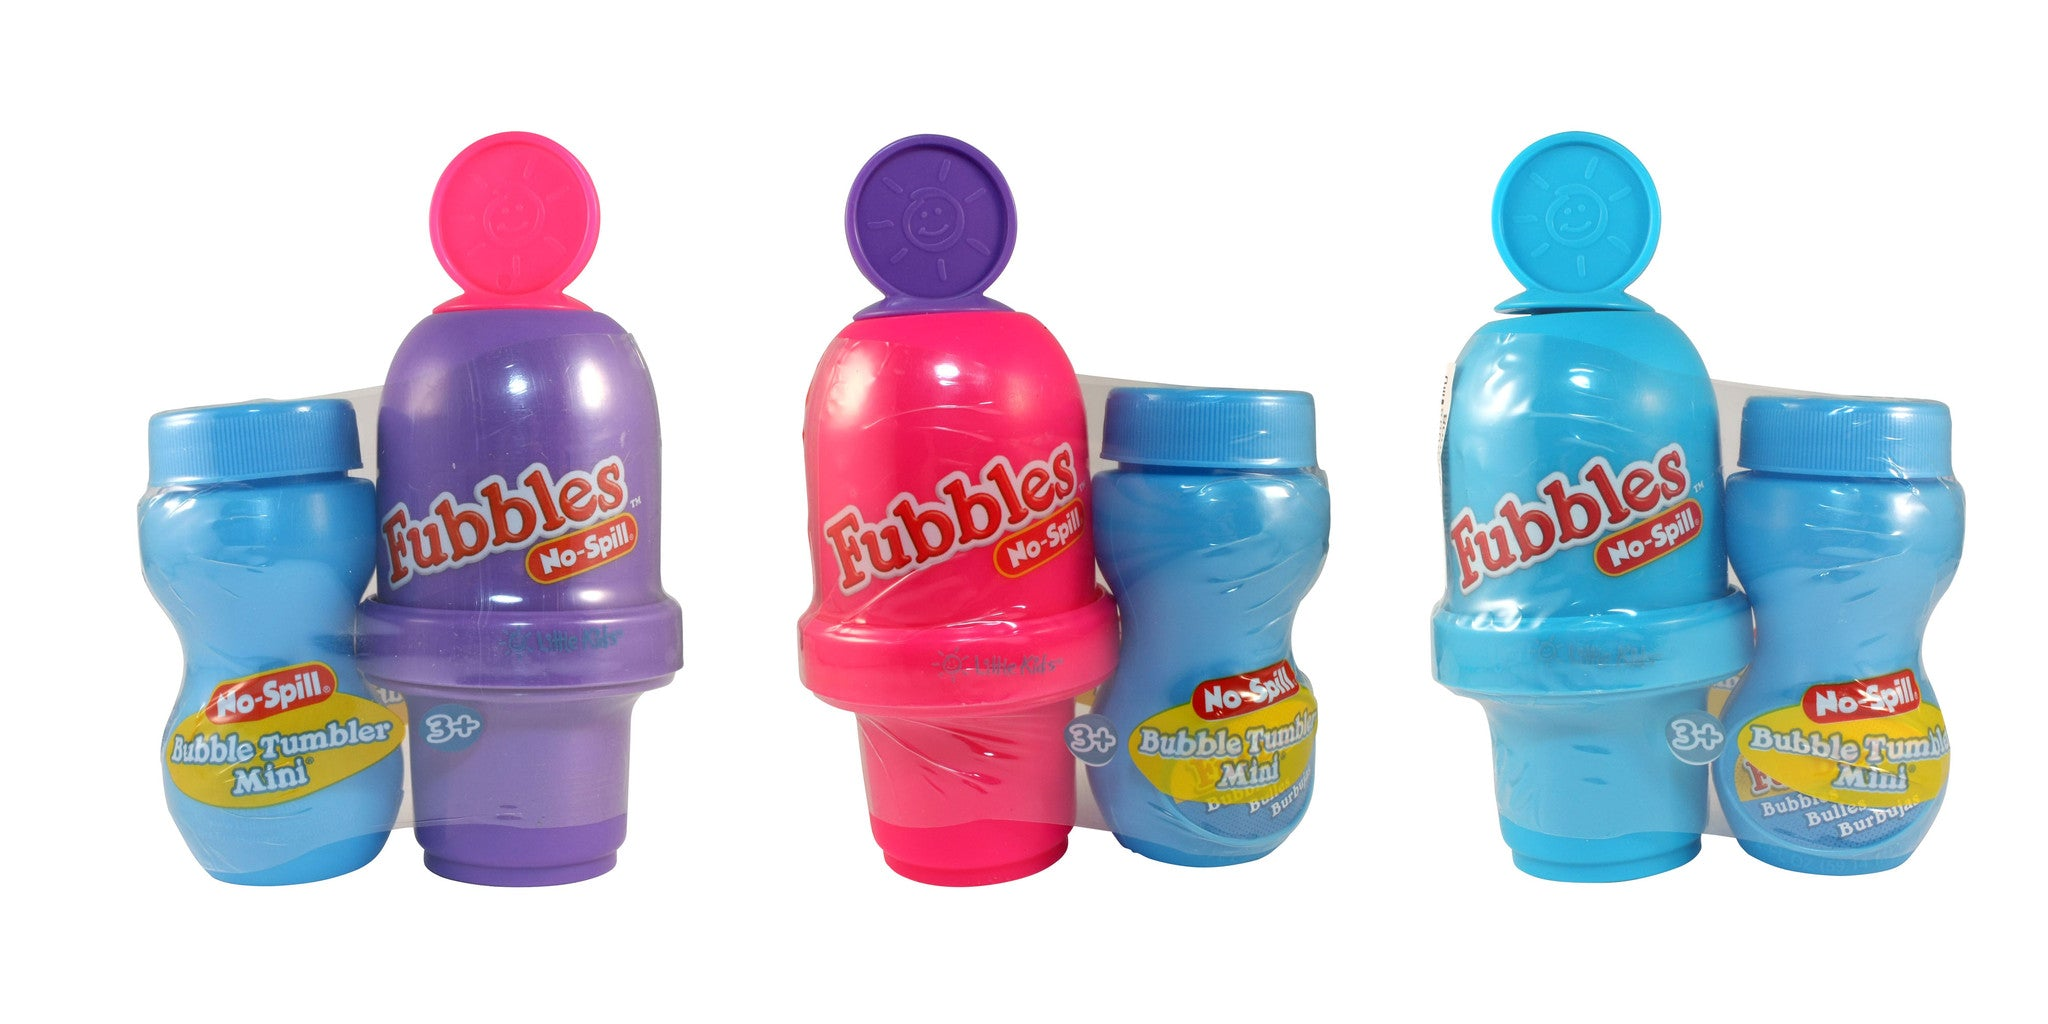 Fubbles No-Spill Bubble Tumbler Minis Pastel Colors Pack of 3 - Off The Wall Toys and Gifts